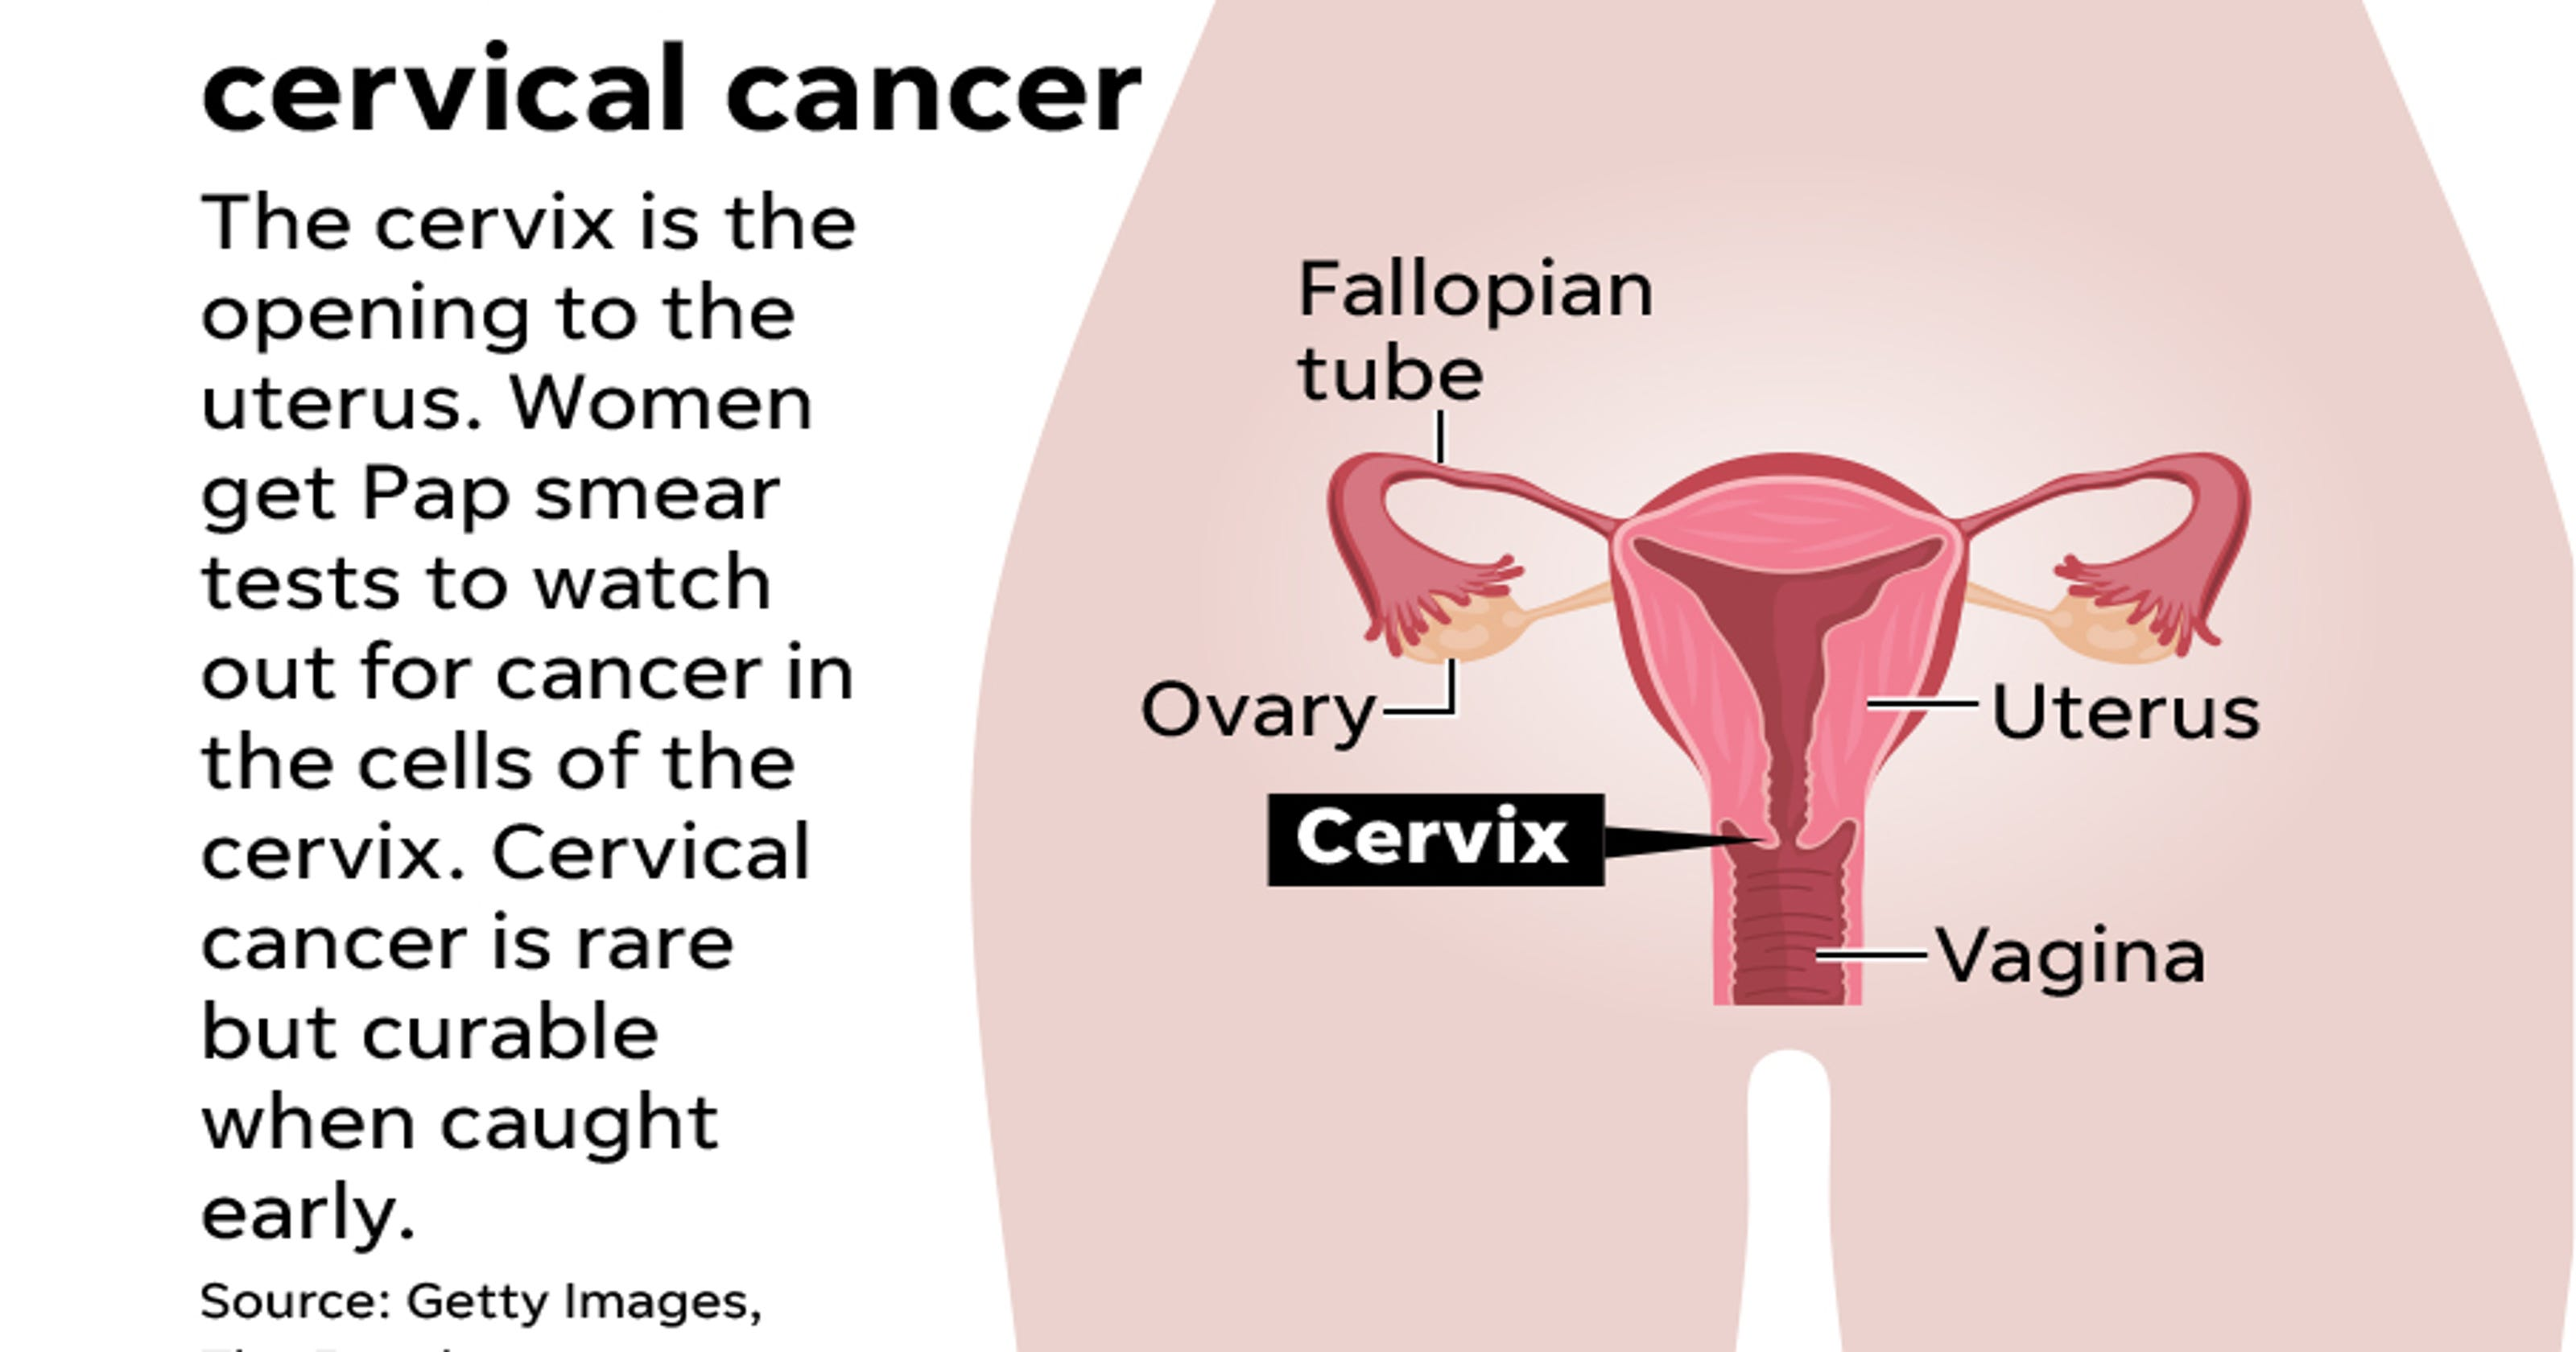 Hysterectomy Study Less Invasive Option Not Best For Cervical Cancer